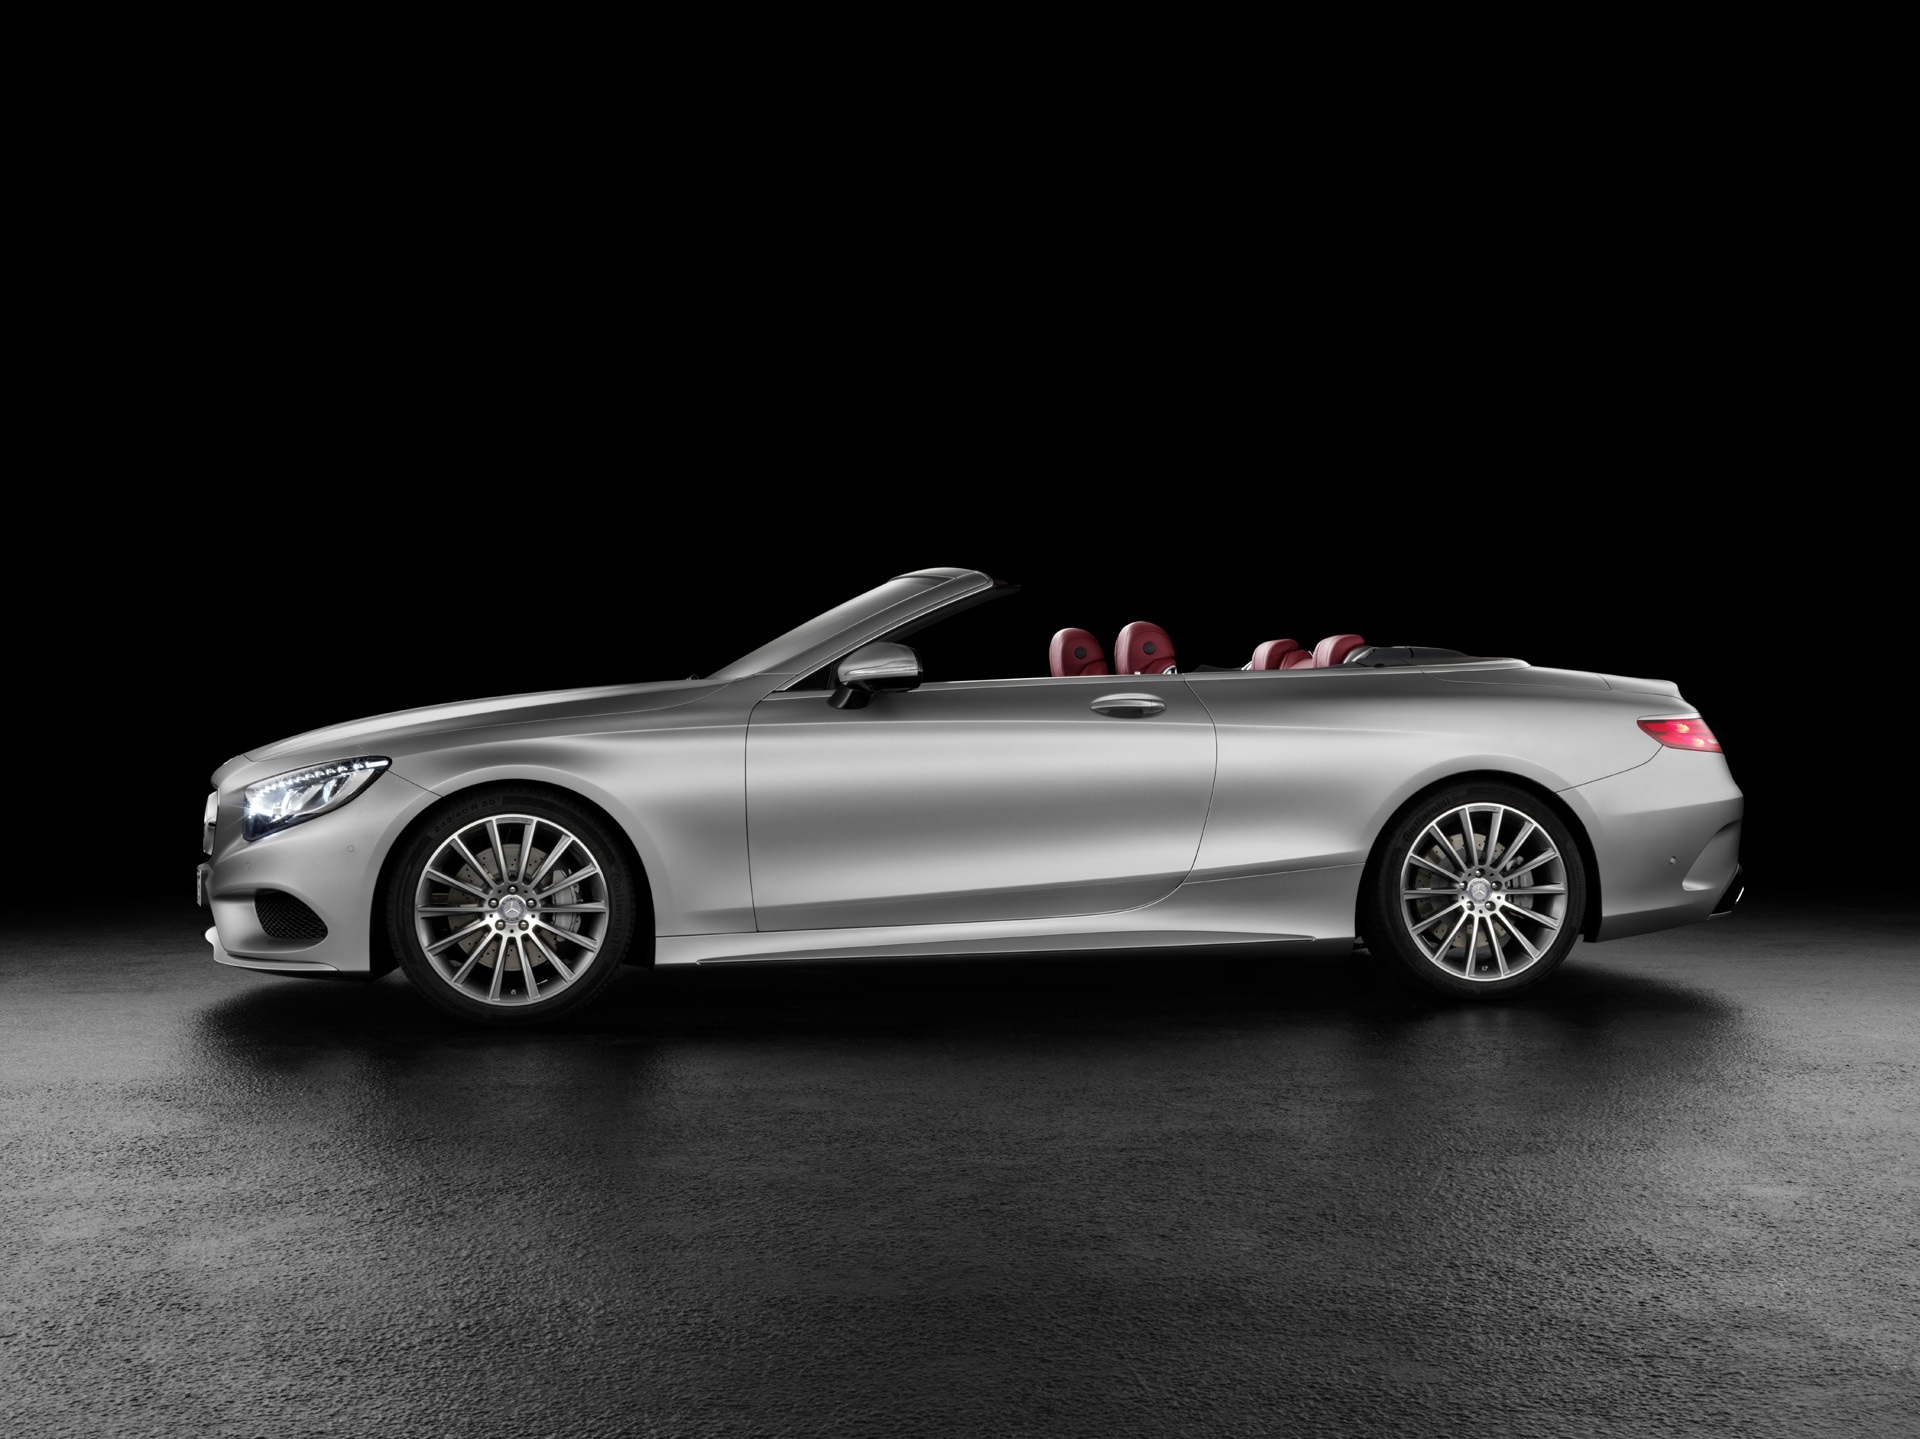 Mercedes S-Class Cabriolet 11 Percent More Expensive Than Fixed Roof 6